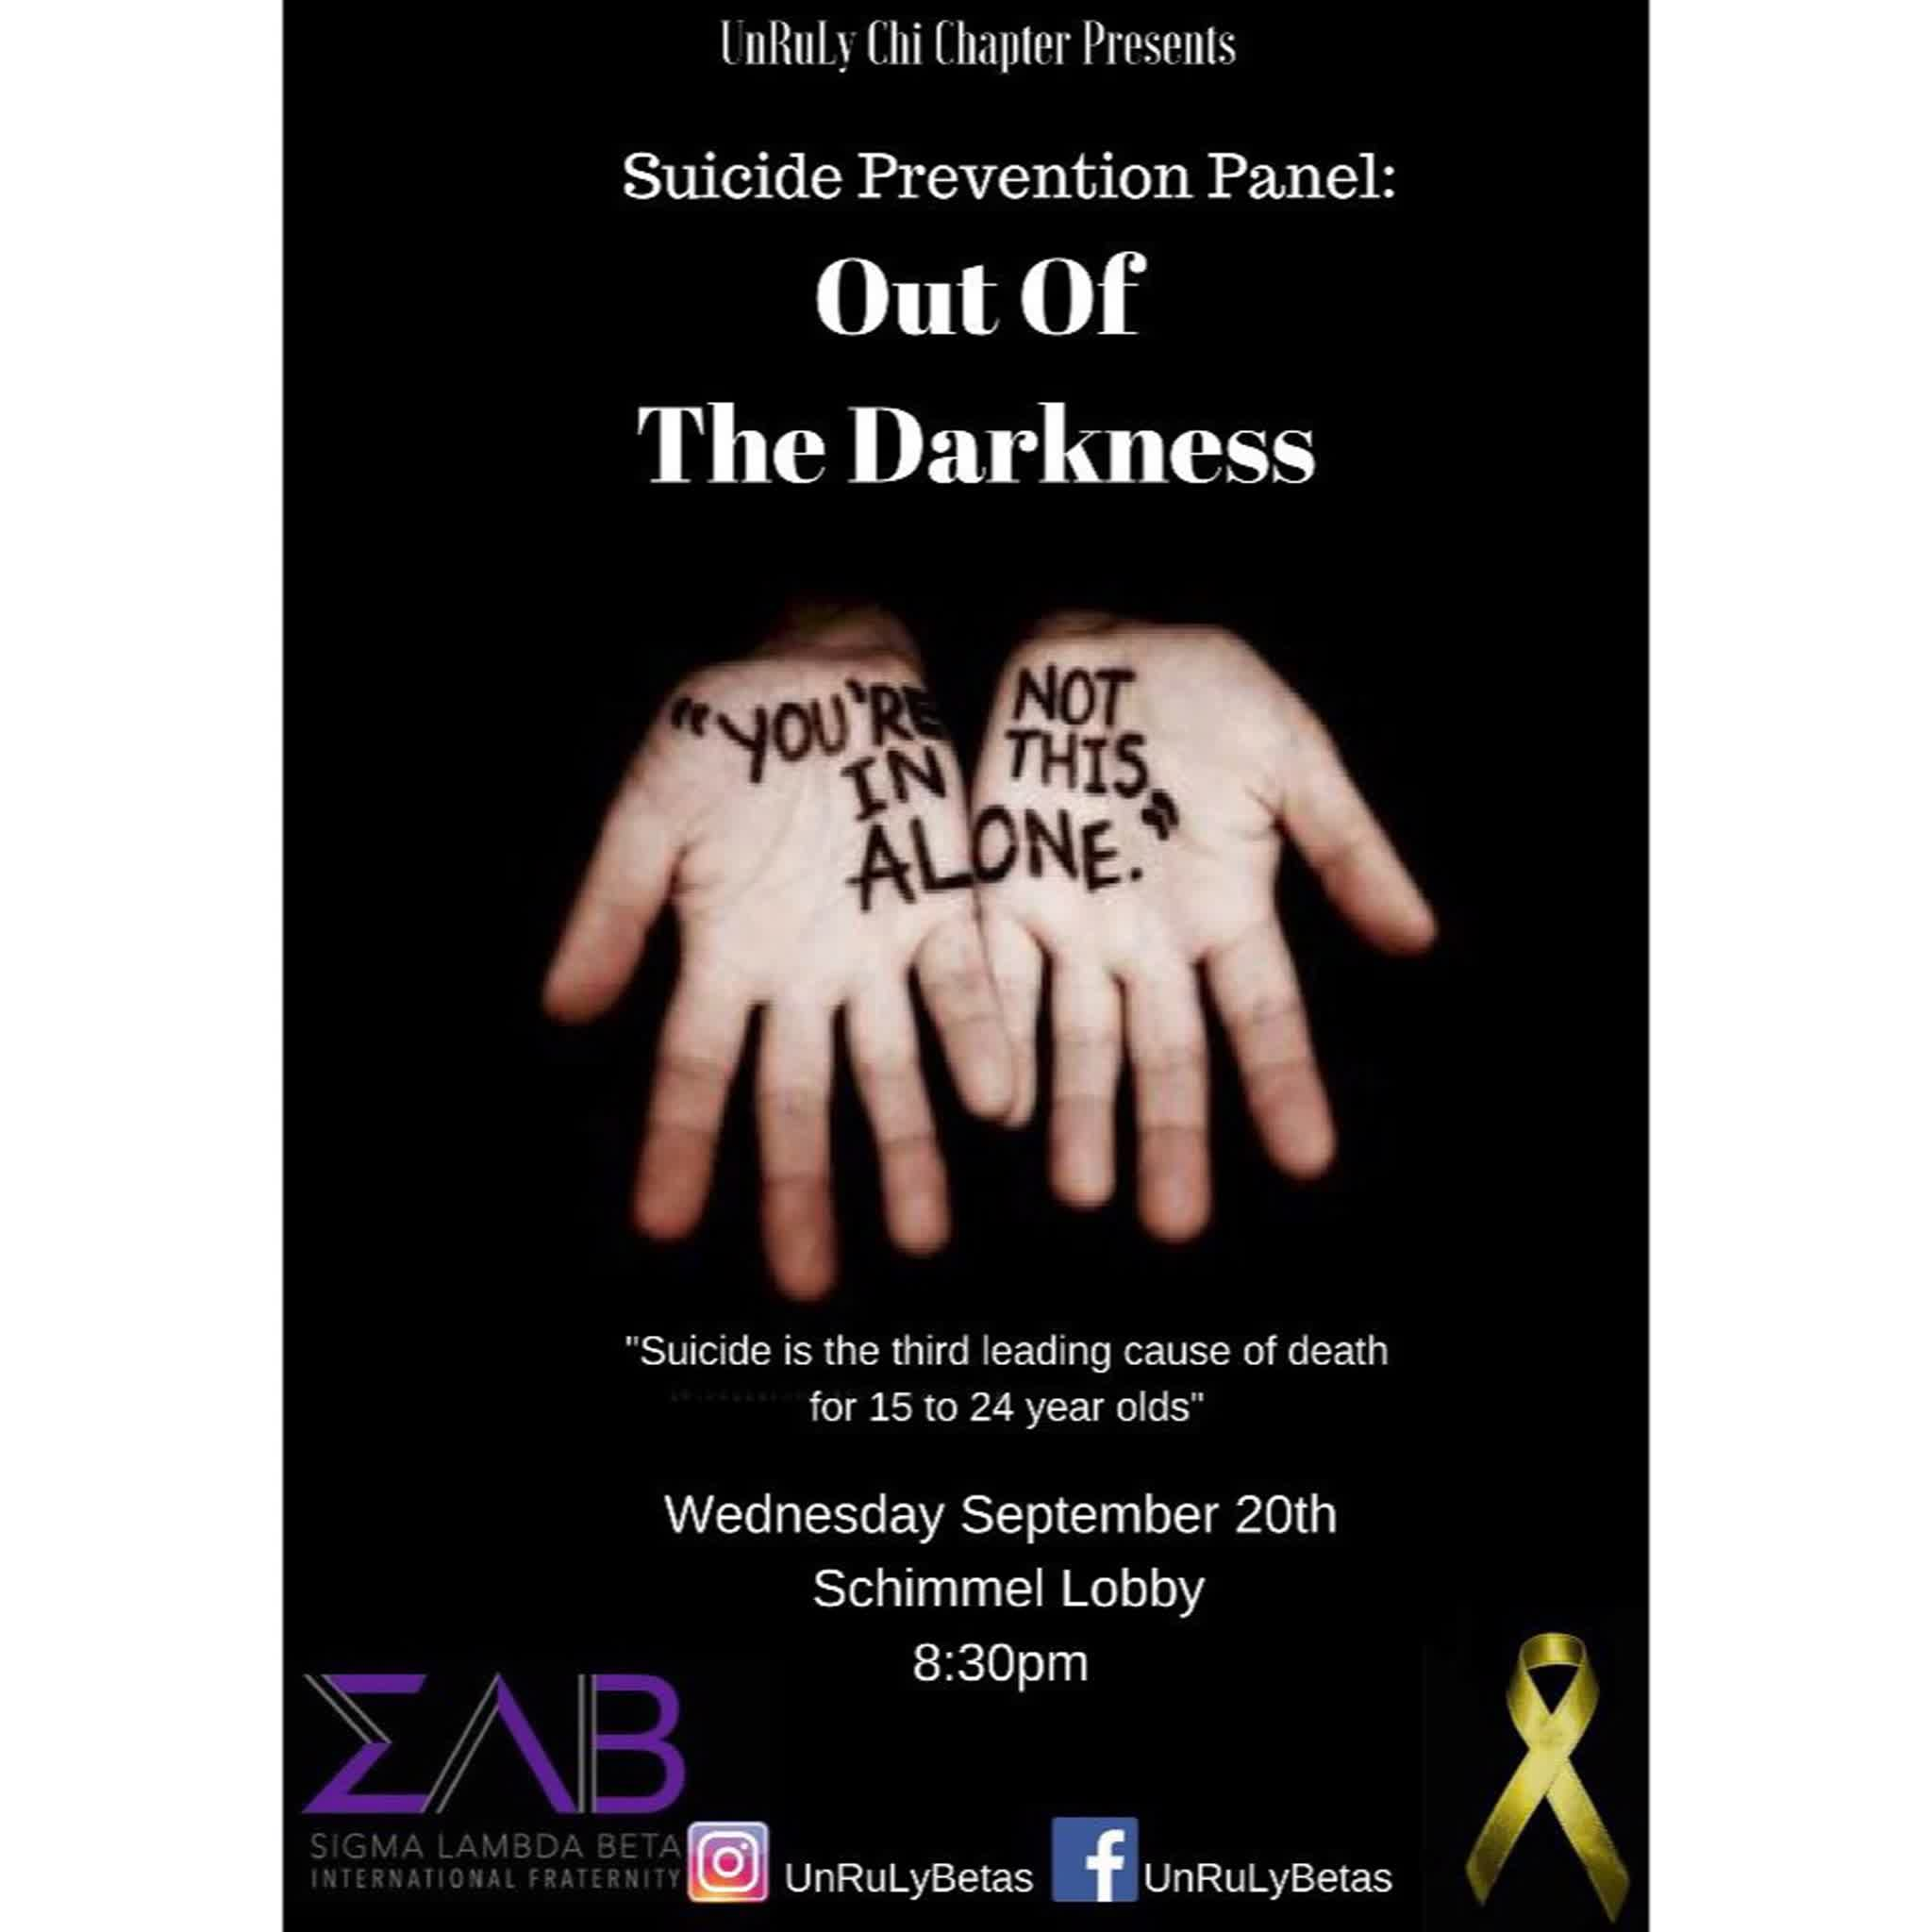 Information regarding Suicide Awareness Panel: Out of the Darkness is as follows Create Your Own Tags: is #SuicideAwareness #SLB and Start date is September 18 2017 and End Date is September 21 2017 and File is Browse and File Name is 960x960_comp.jpg and Email is jb10462n@pace.edu and Name is Joseph Balbuena and Affiliation is recognized student organization and Panel is Side and Group Name is Sigma Lambda Beta International Fraternity Inc. and Name of Ad/Event is Suicide Awareness Panel: Out of the Darkness and